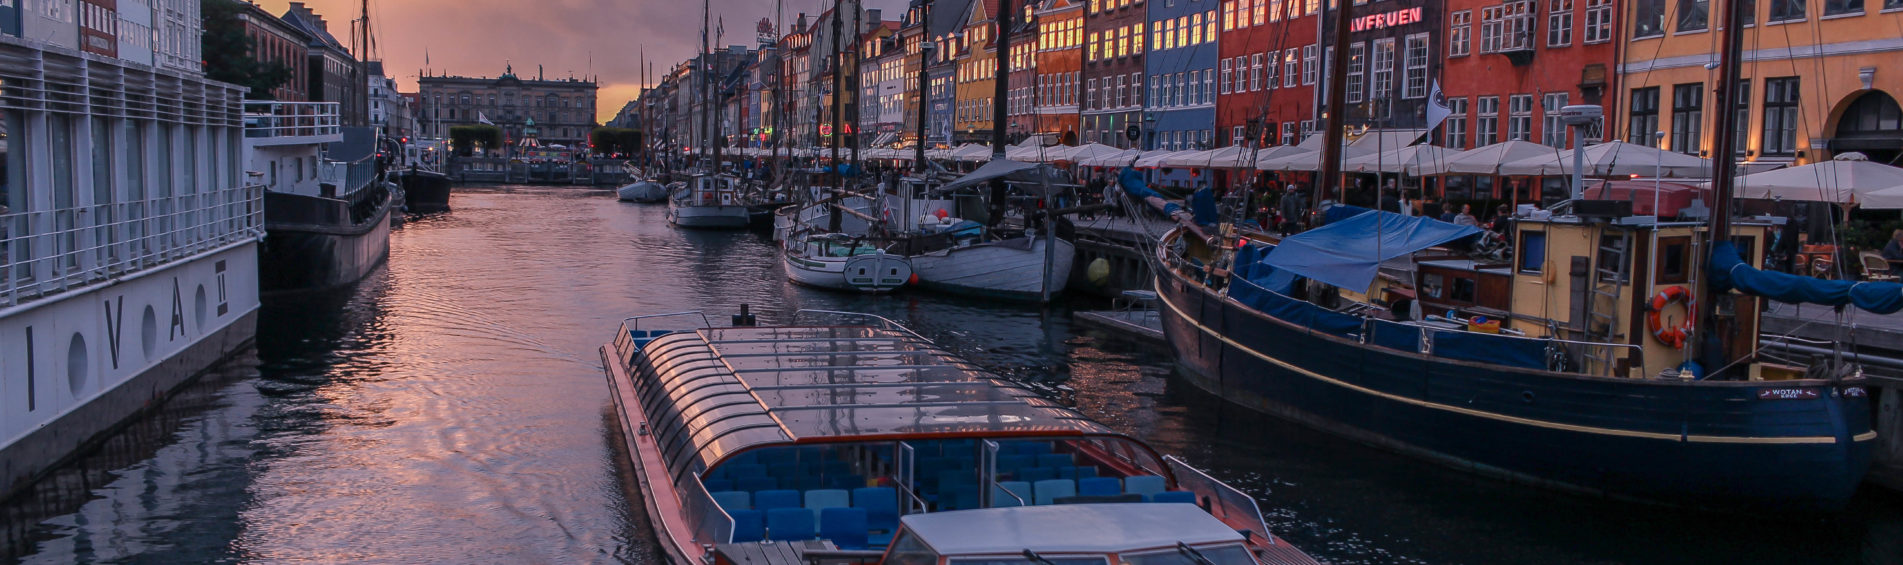 15 choses à voir à Copenhague